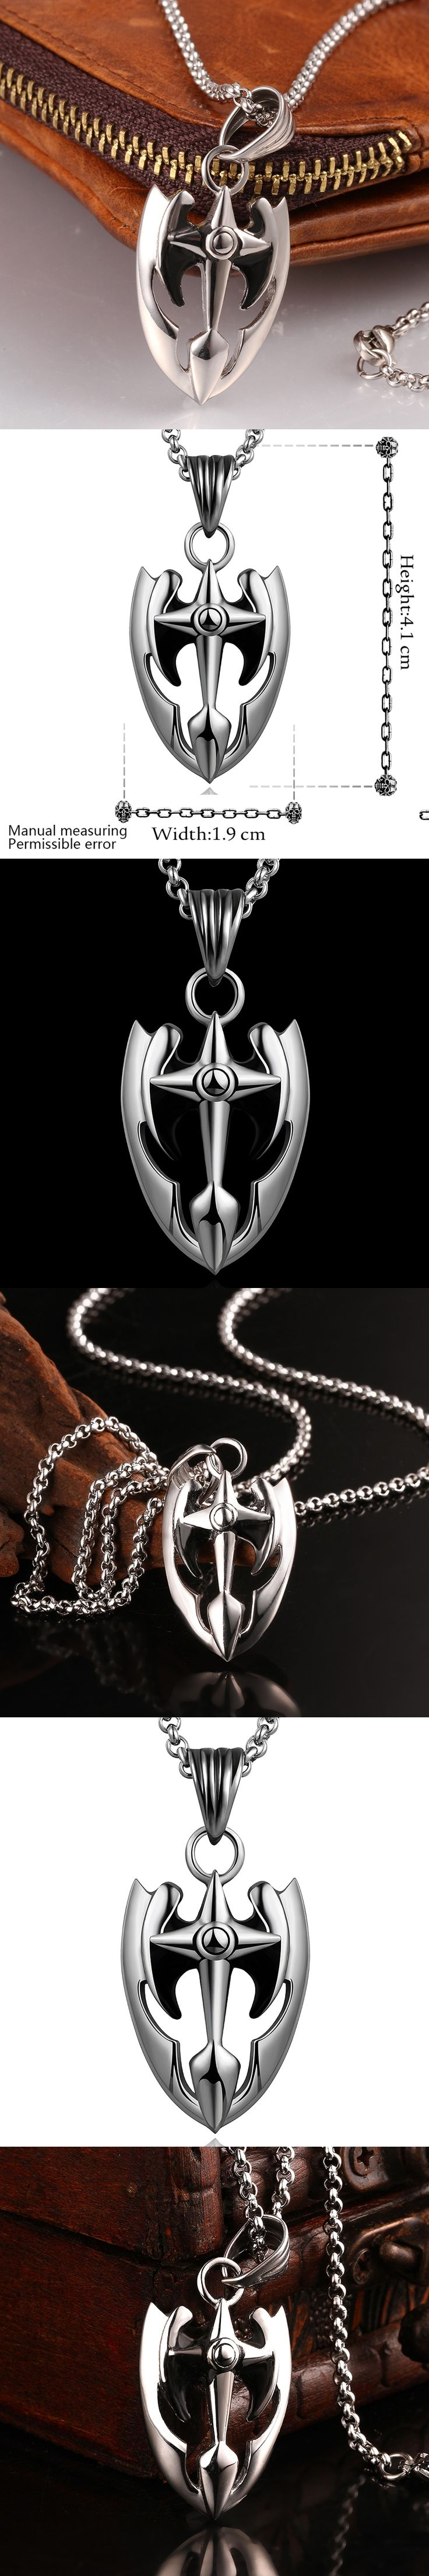 Tiger Totem Male Necklaces Pendants 316L stainless steel Men Classic Cross Choker Fashion jewelry Necklace Pingent Free Shipping